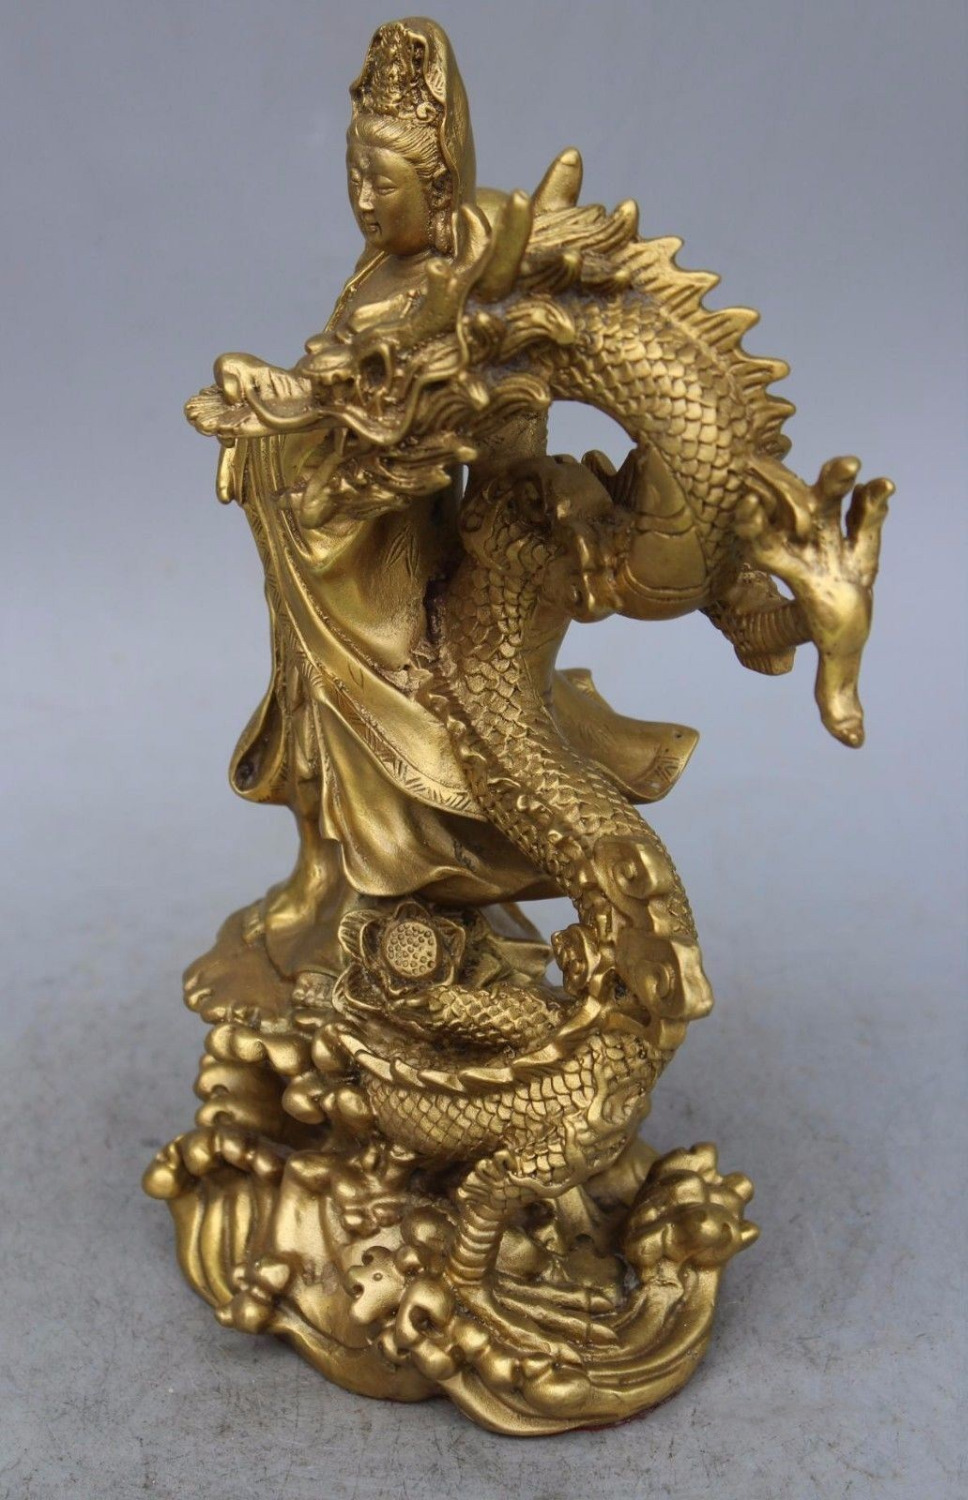 China Brass Dragon kwan-yin GuanYin Goddess buddha statue